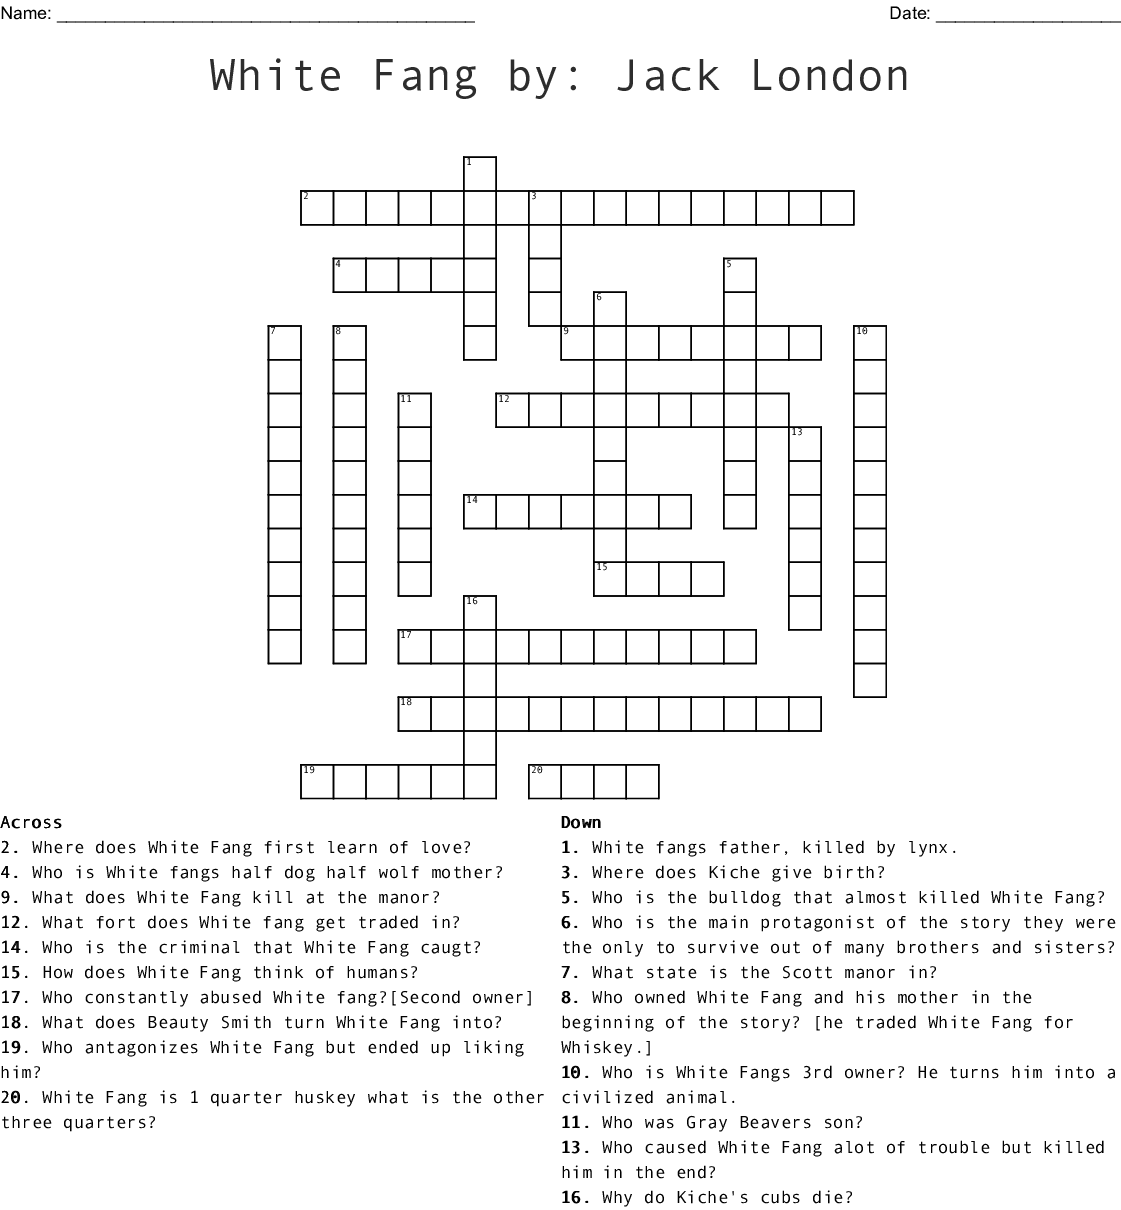 White Fang By Jack London Crossword